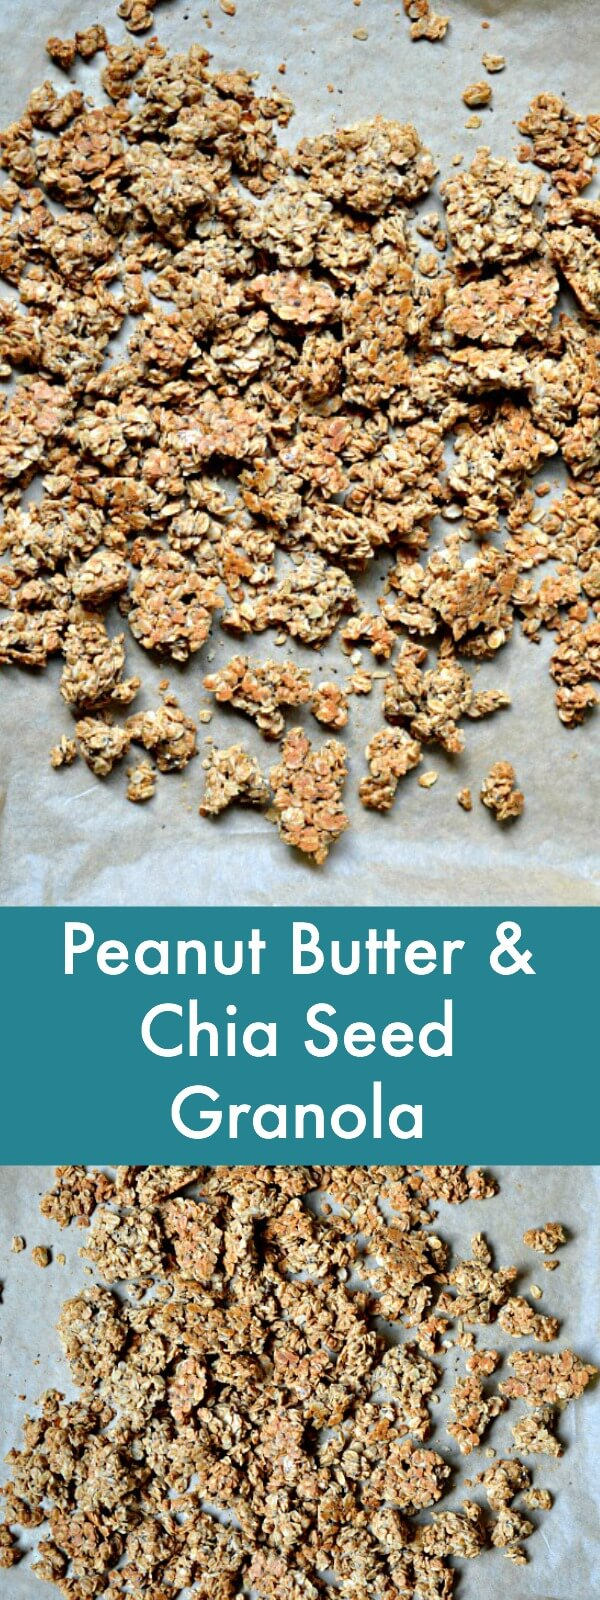 This Peanut Butter and Chia Seed Granola features a short ingredient list and quick prep time to provide you with a cheaper and tastier alternative to store-bought granola.